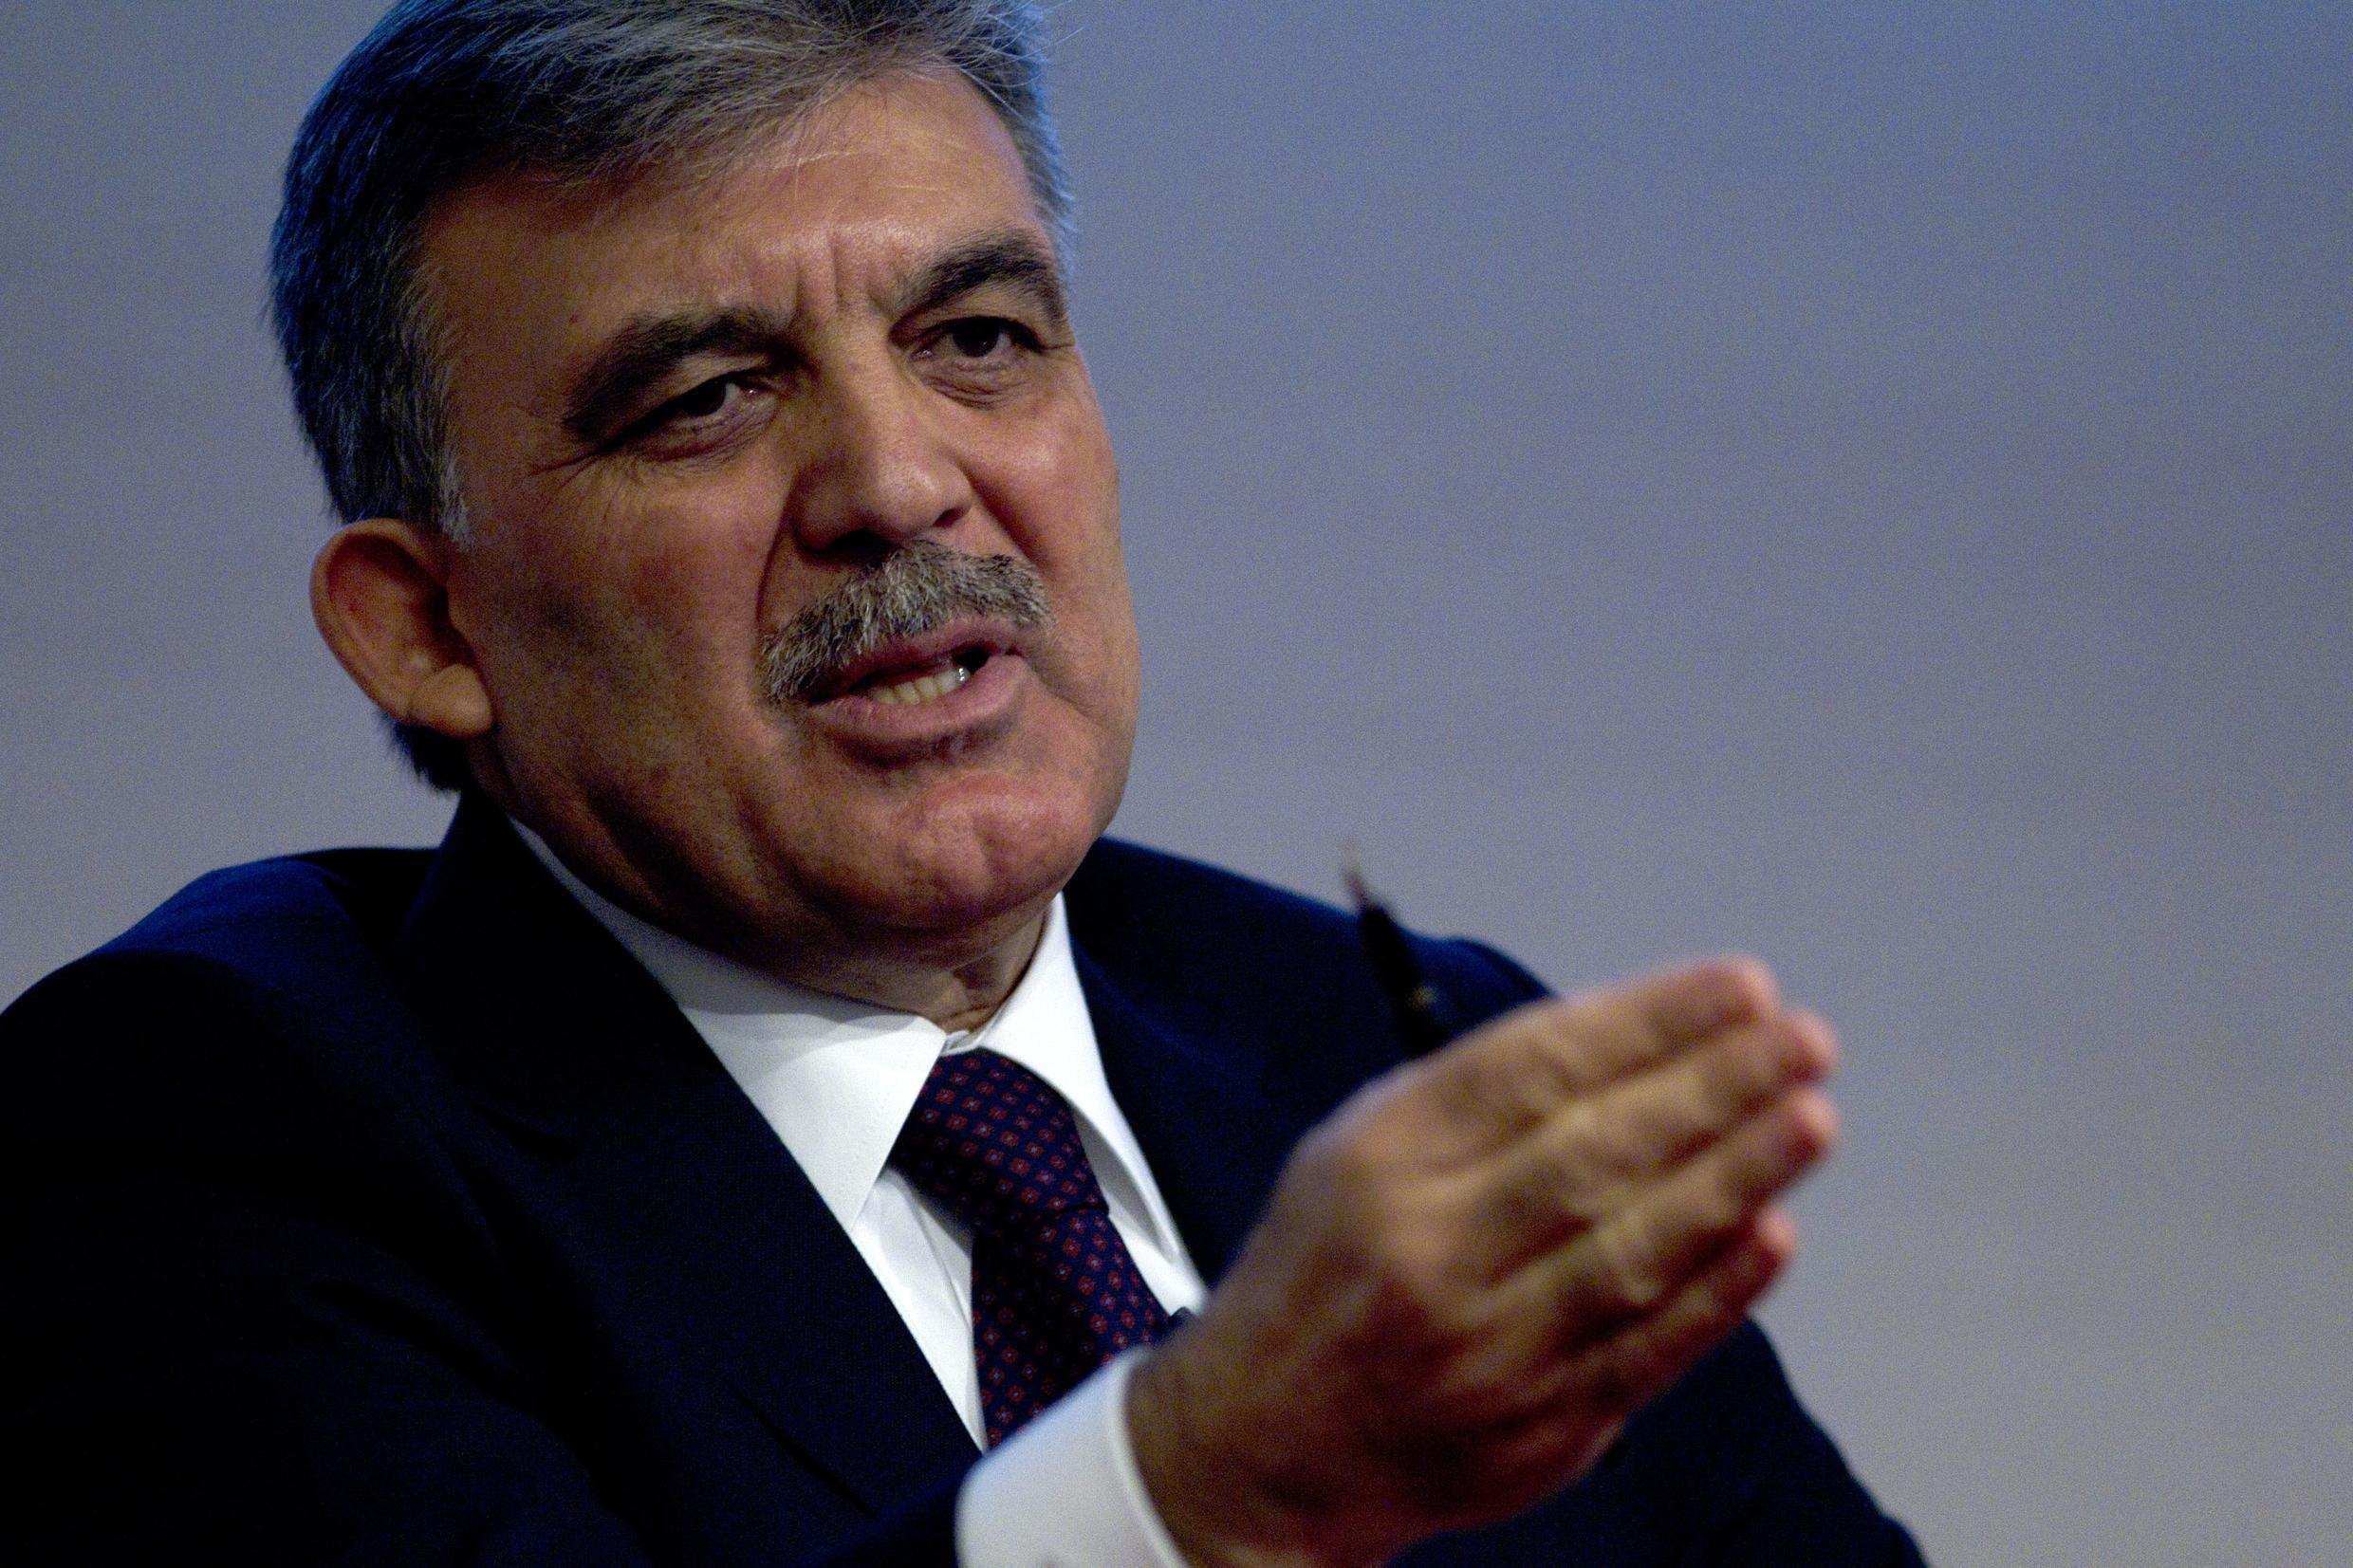 From comrade to rival - outgoing Turkish president Abdullah Gül